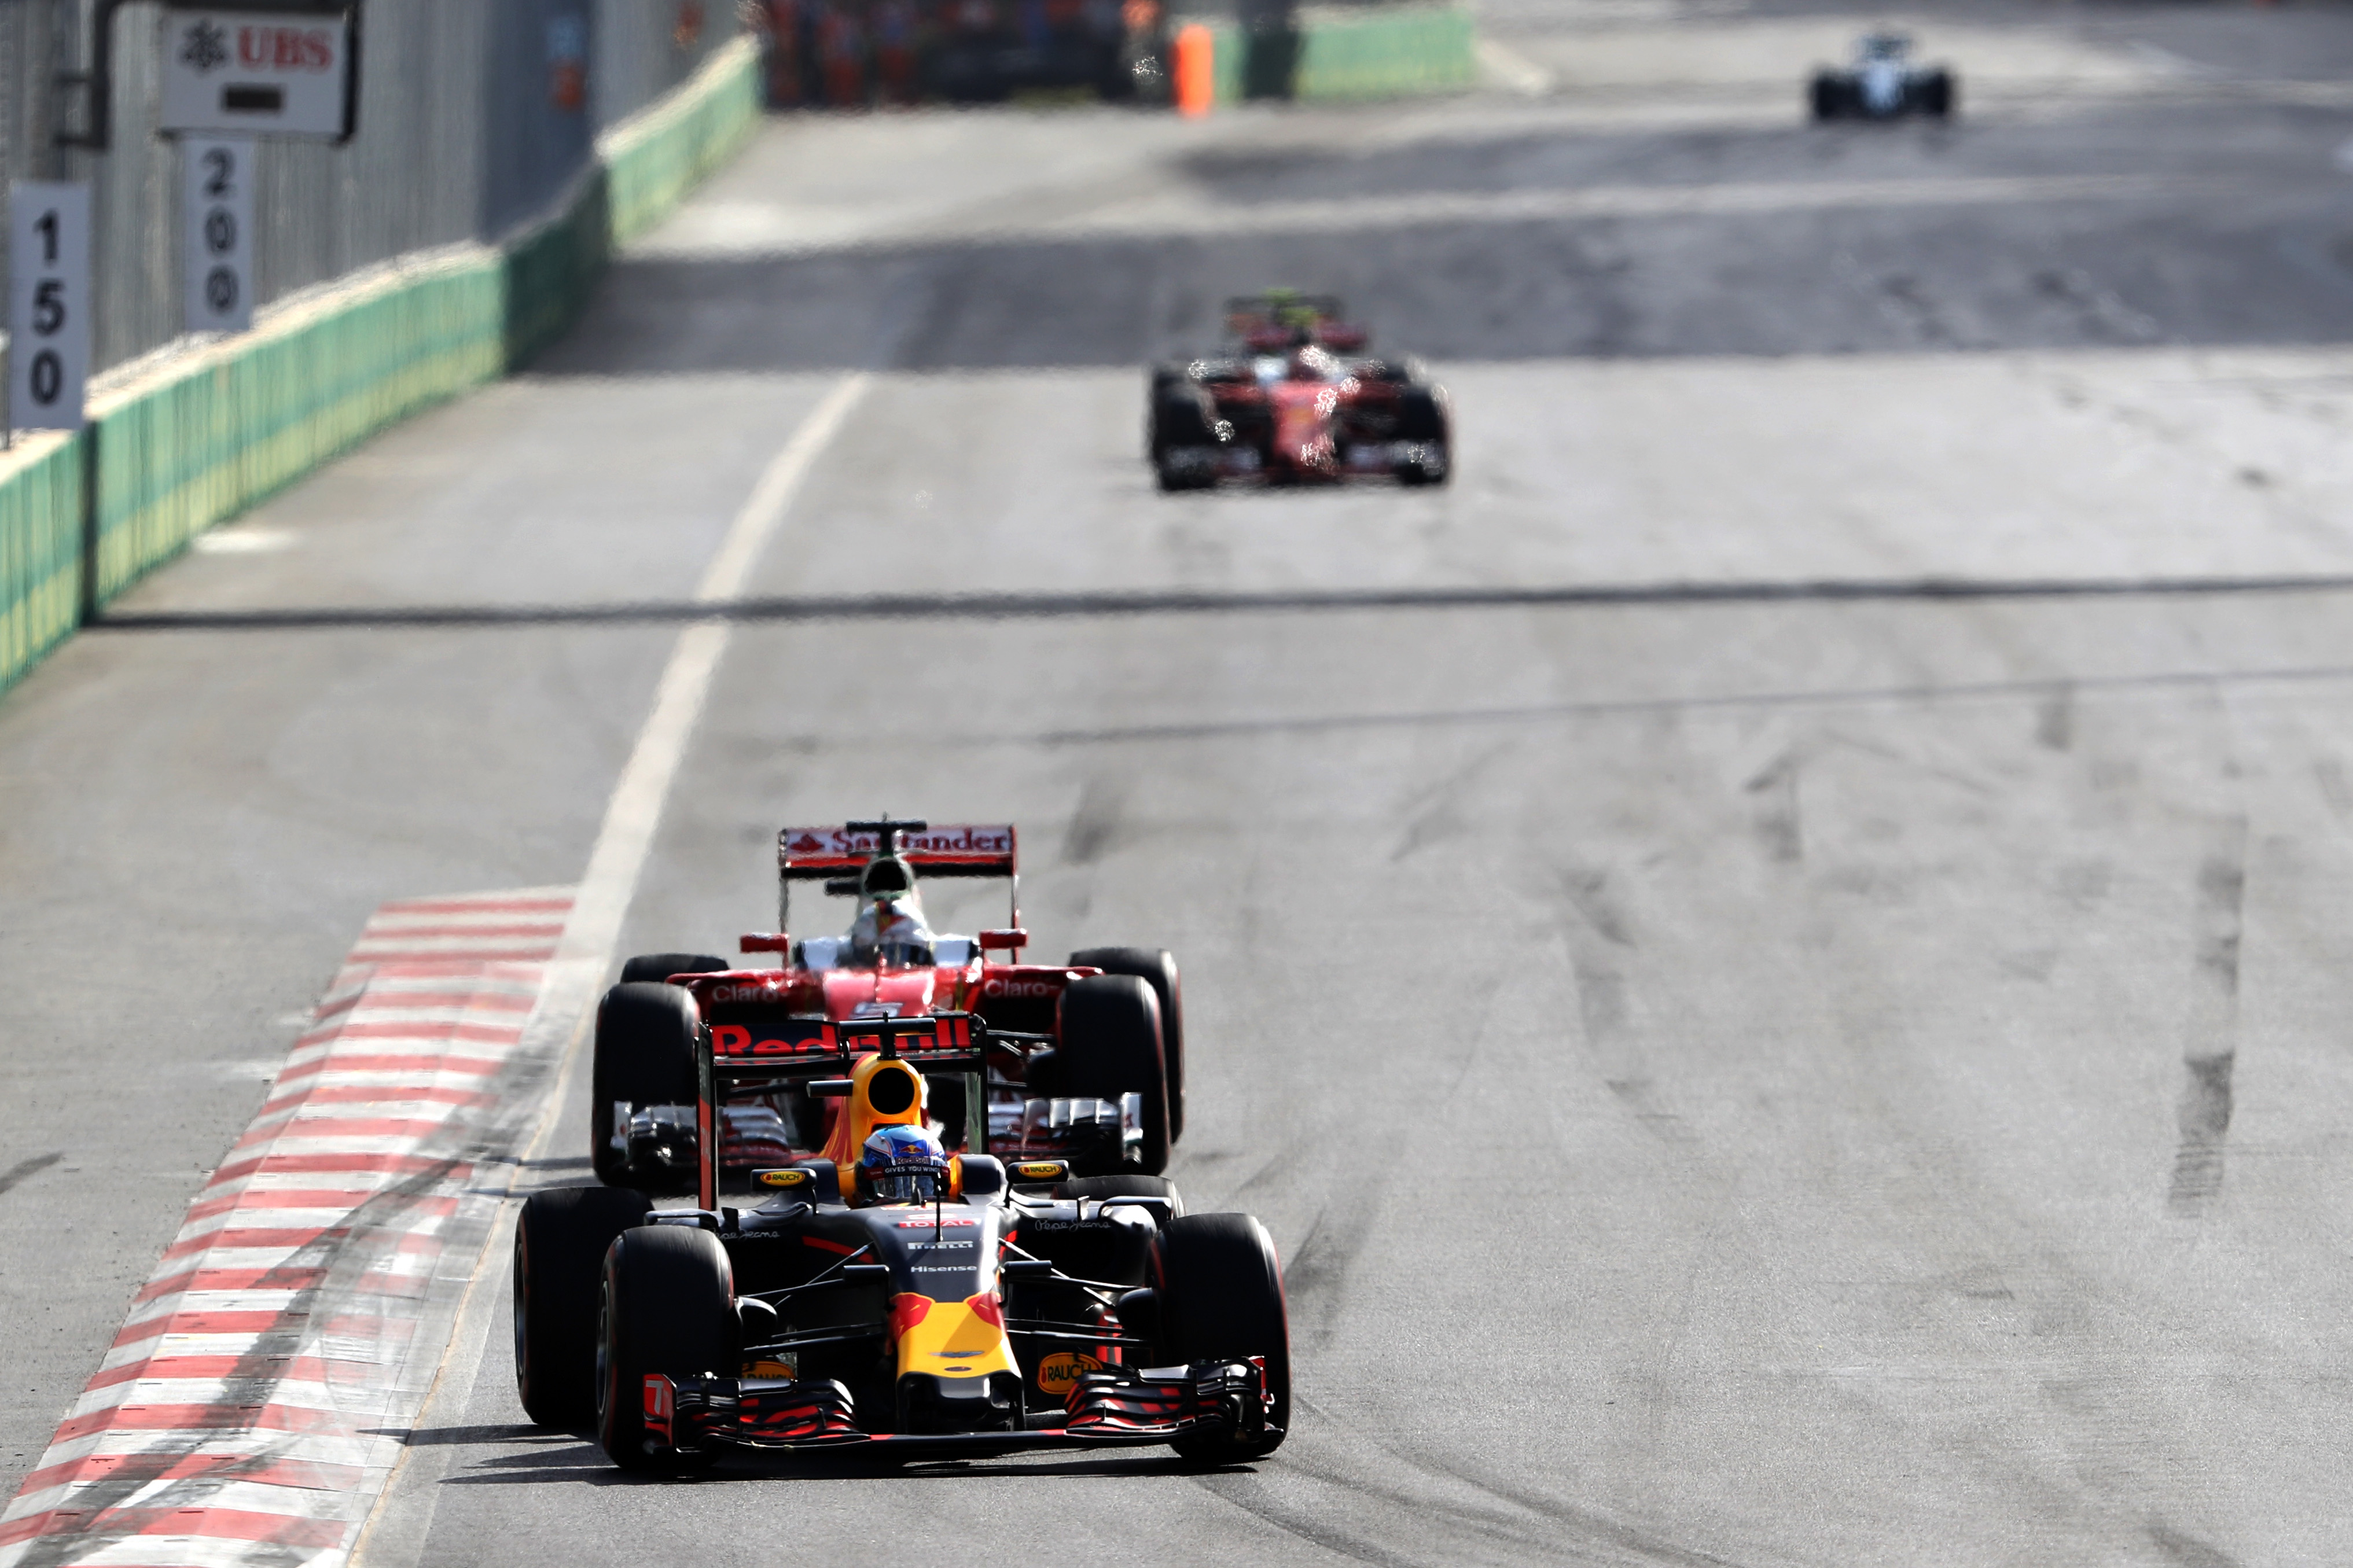 Daniel Ricciardo on track  during the European Formula One Grand Prix at Baku City Circuit in Baku, Azerbaijan. Picture: Mark Thompson/Getty Images